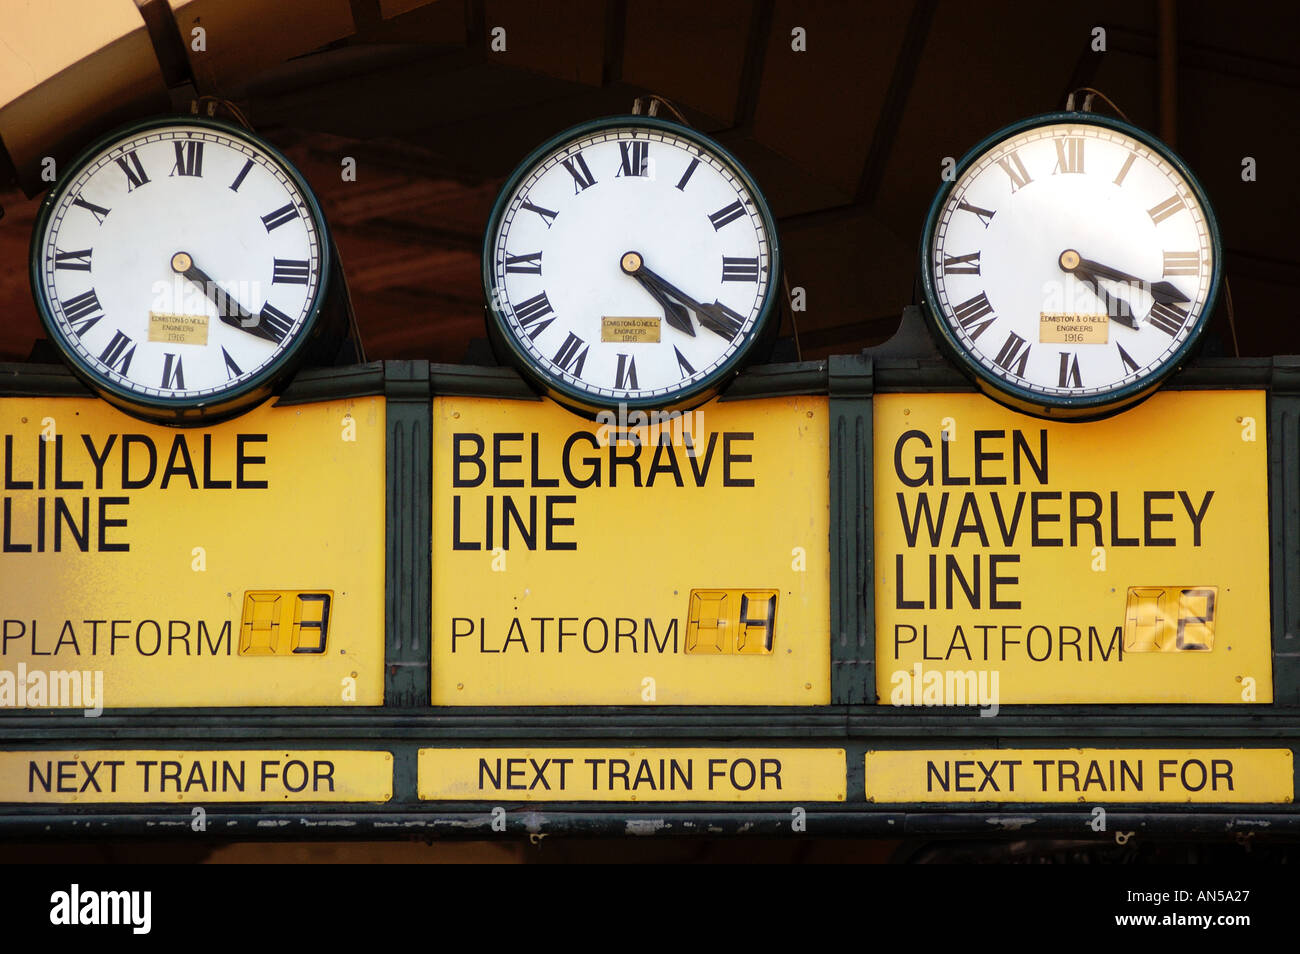 Australia melbourne clocks stock photos australia melbourne old clocks at entrance to flinders street railway station in melbourne australia 2006 stock image amipublicfo Image collections